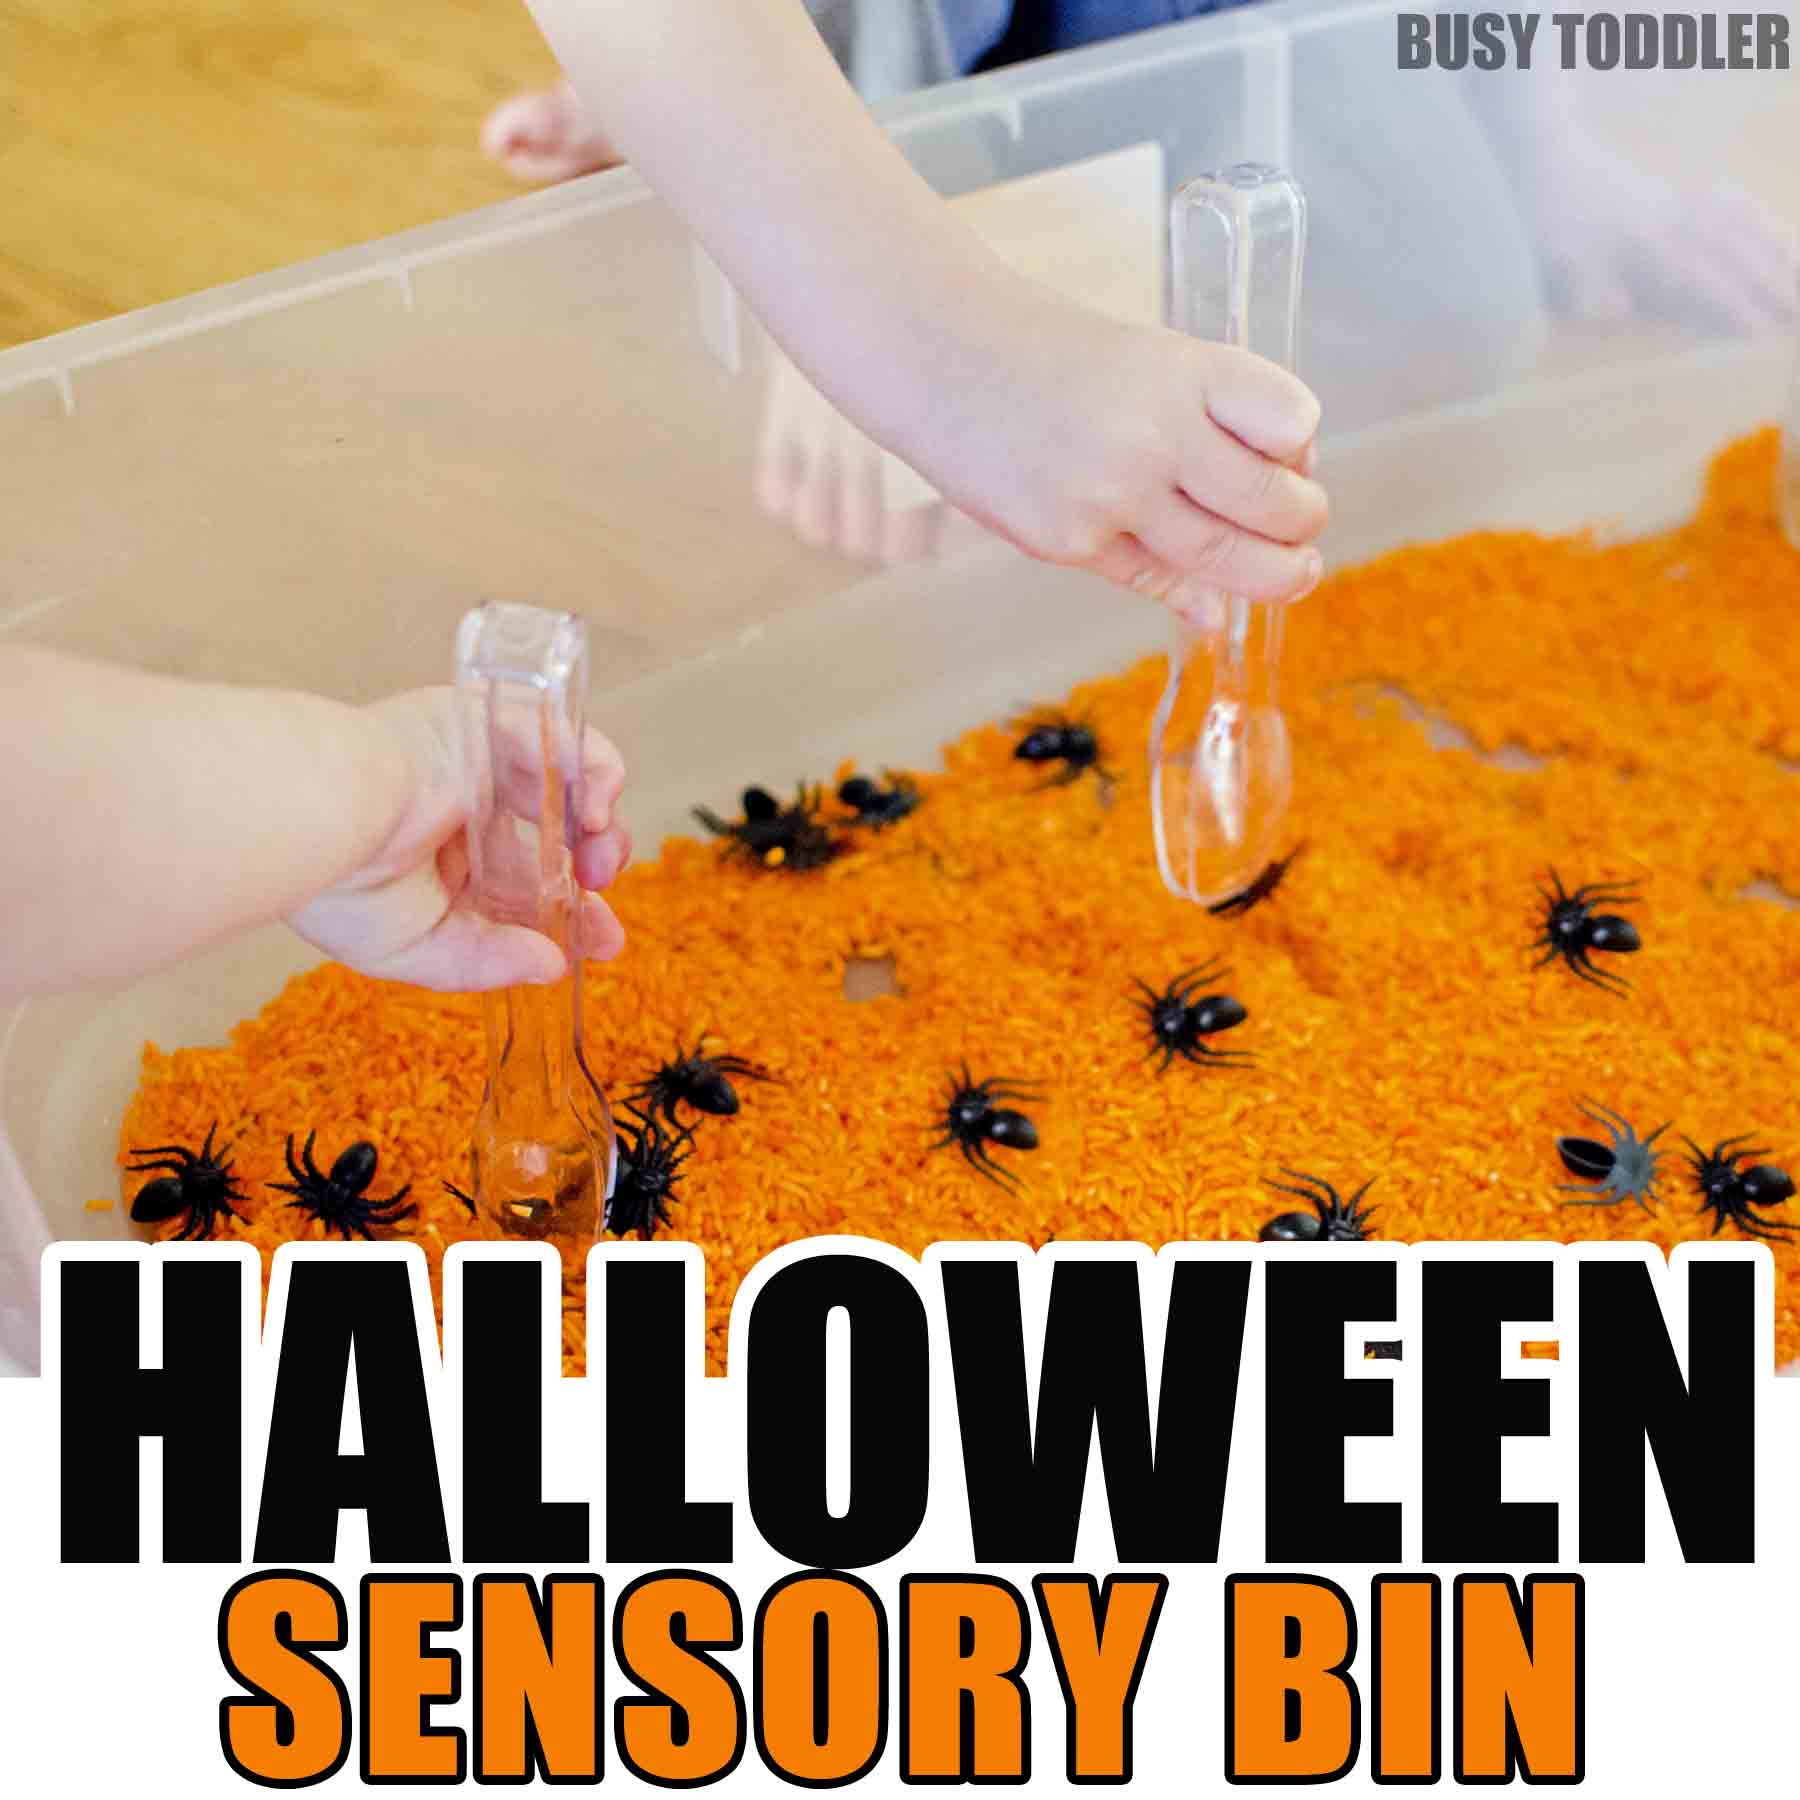 Check out this simple Halloween sensory bin! Toddlers will love this quick and easy indoor activity that is so fast to set up. A great simple activity that's perfect for toddlers and preschoolers.